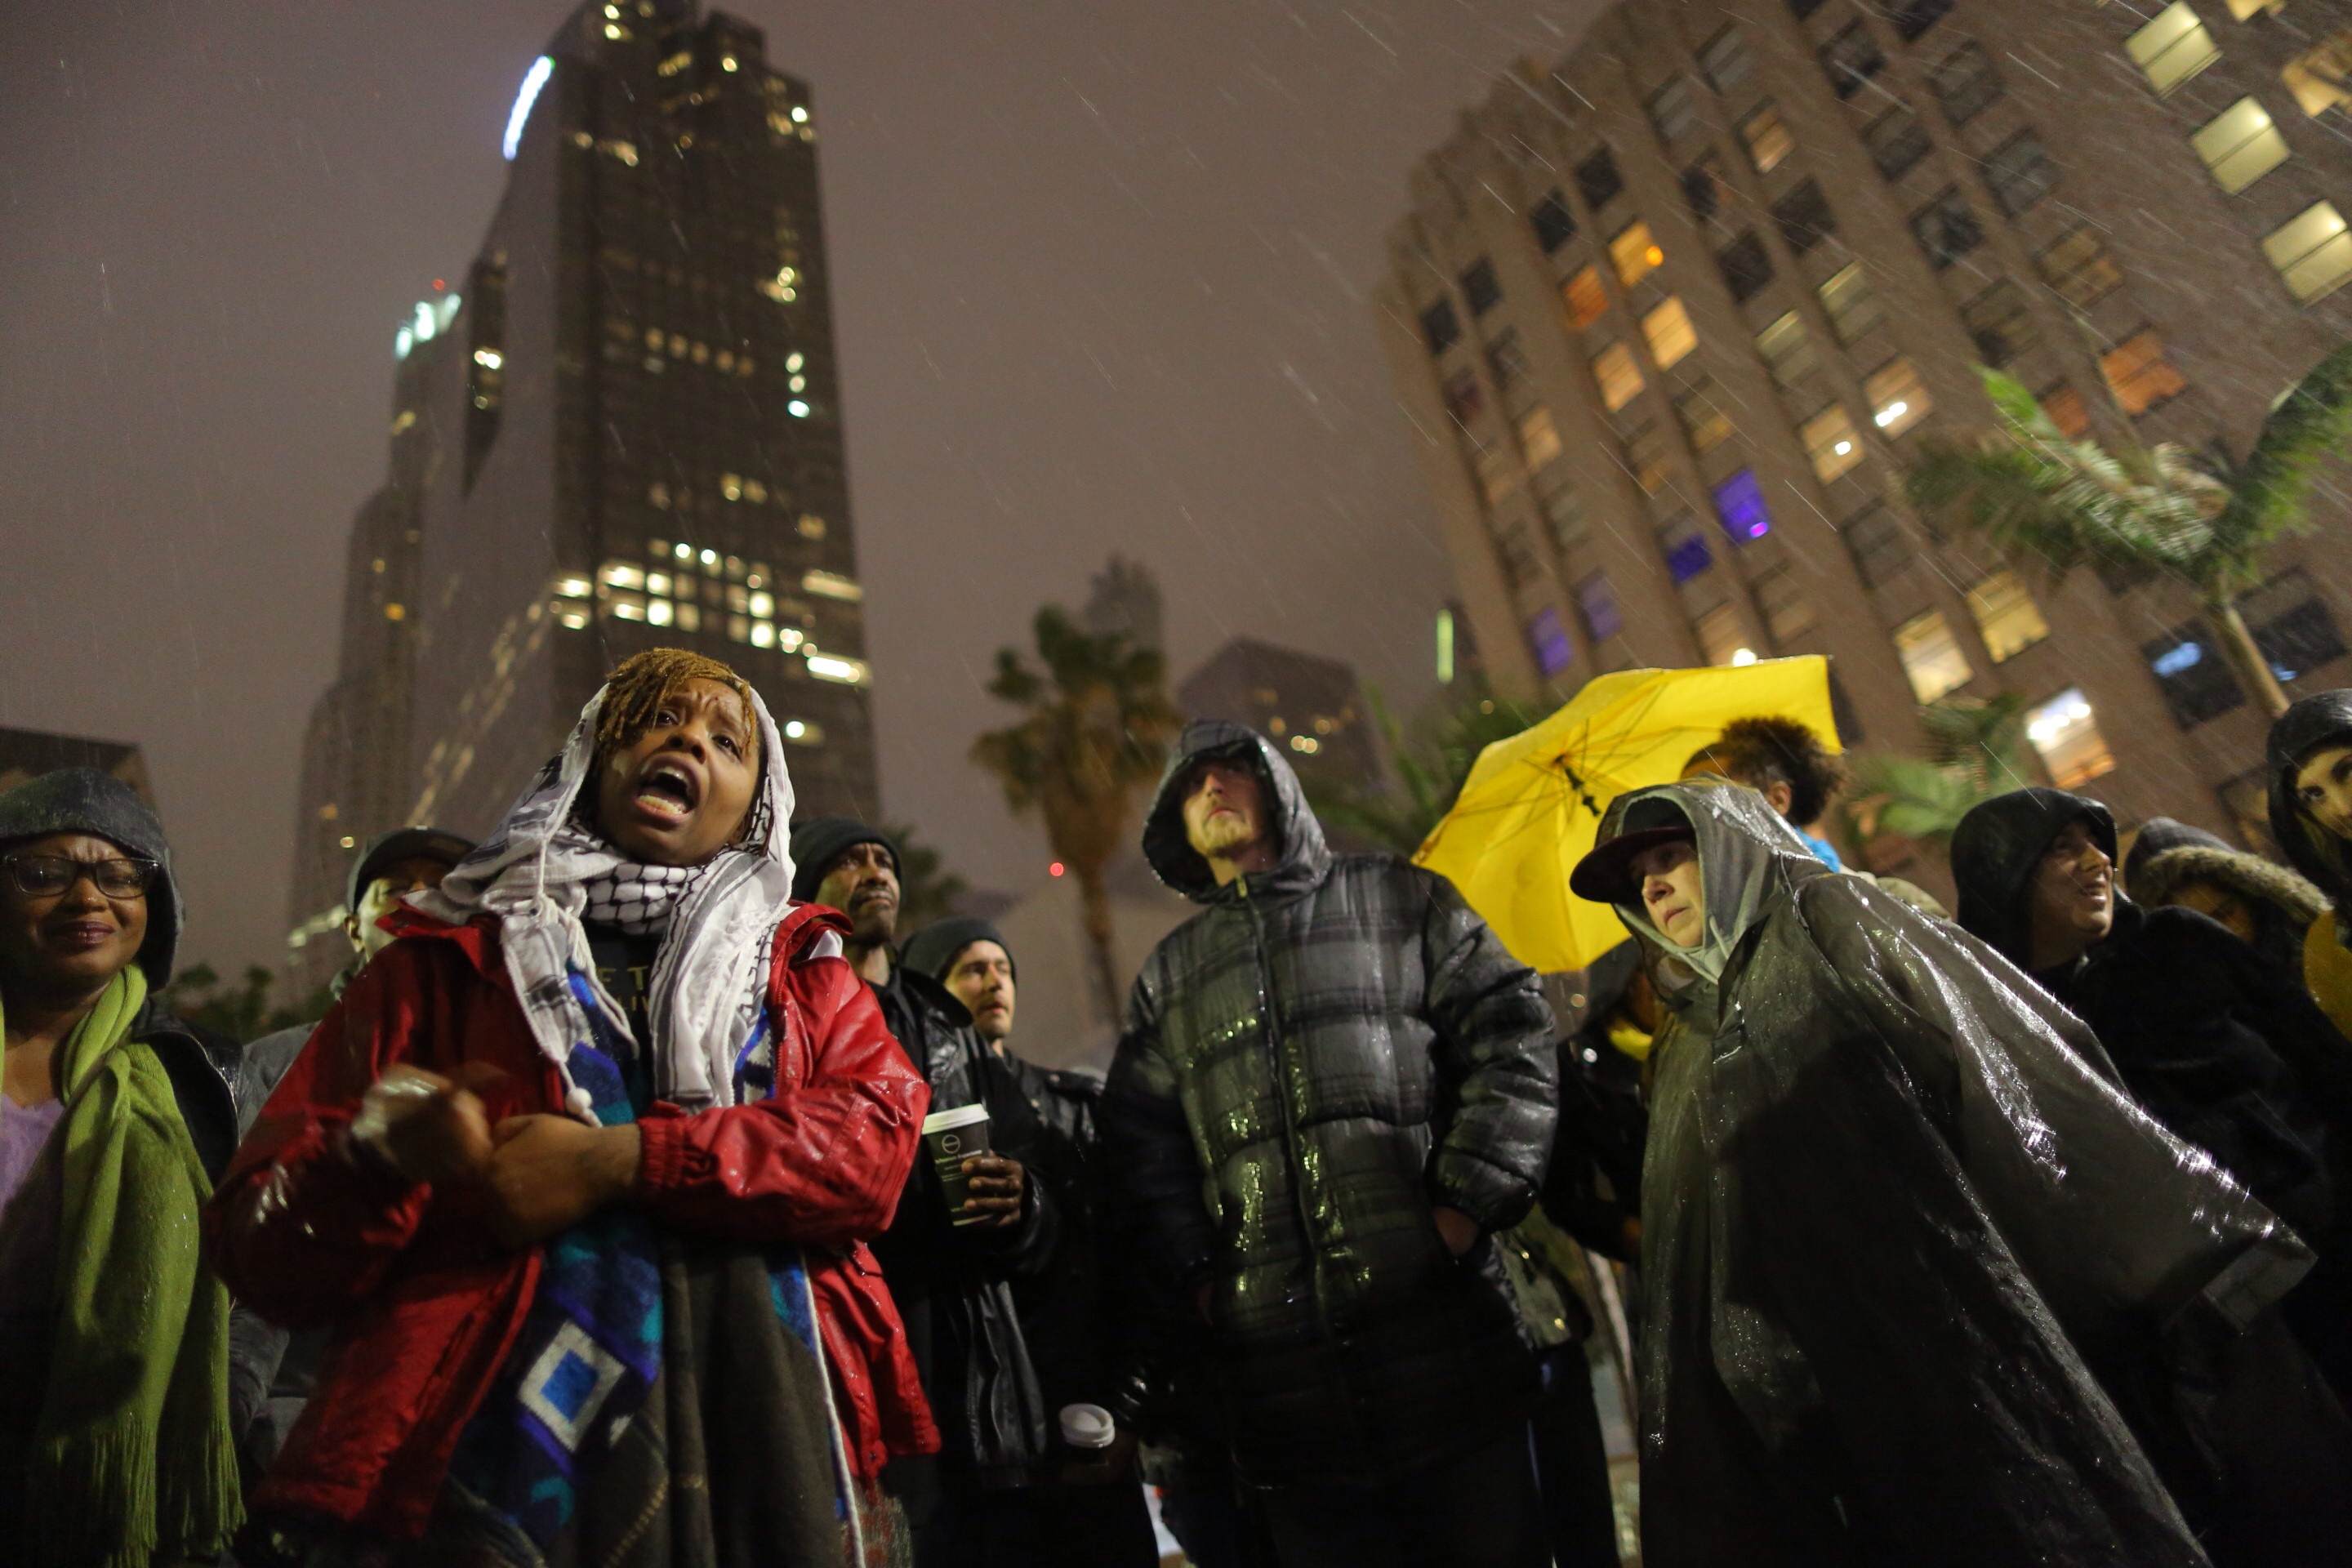 Patrisse Cullors speaks to the people gathered at Pershing Square in Los Angeles to protest a homeless man who was shot during a confrontation downtown by the LAPD, March 1, 2015